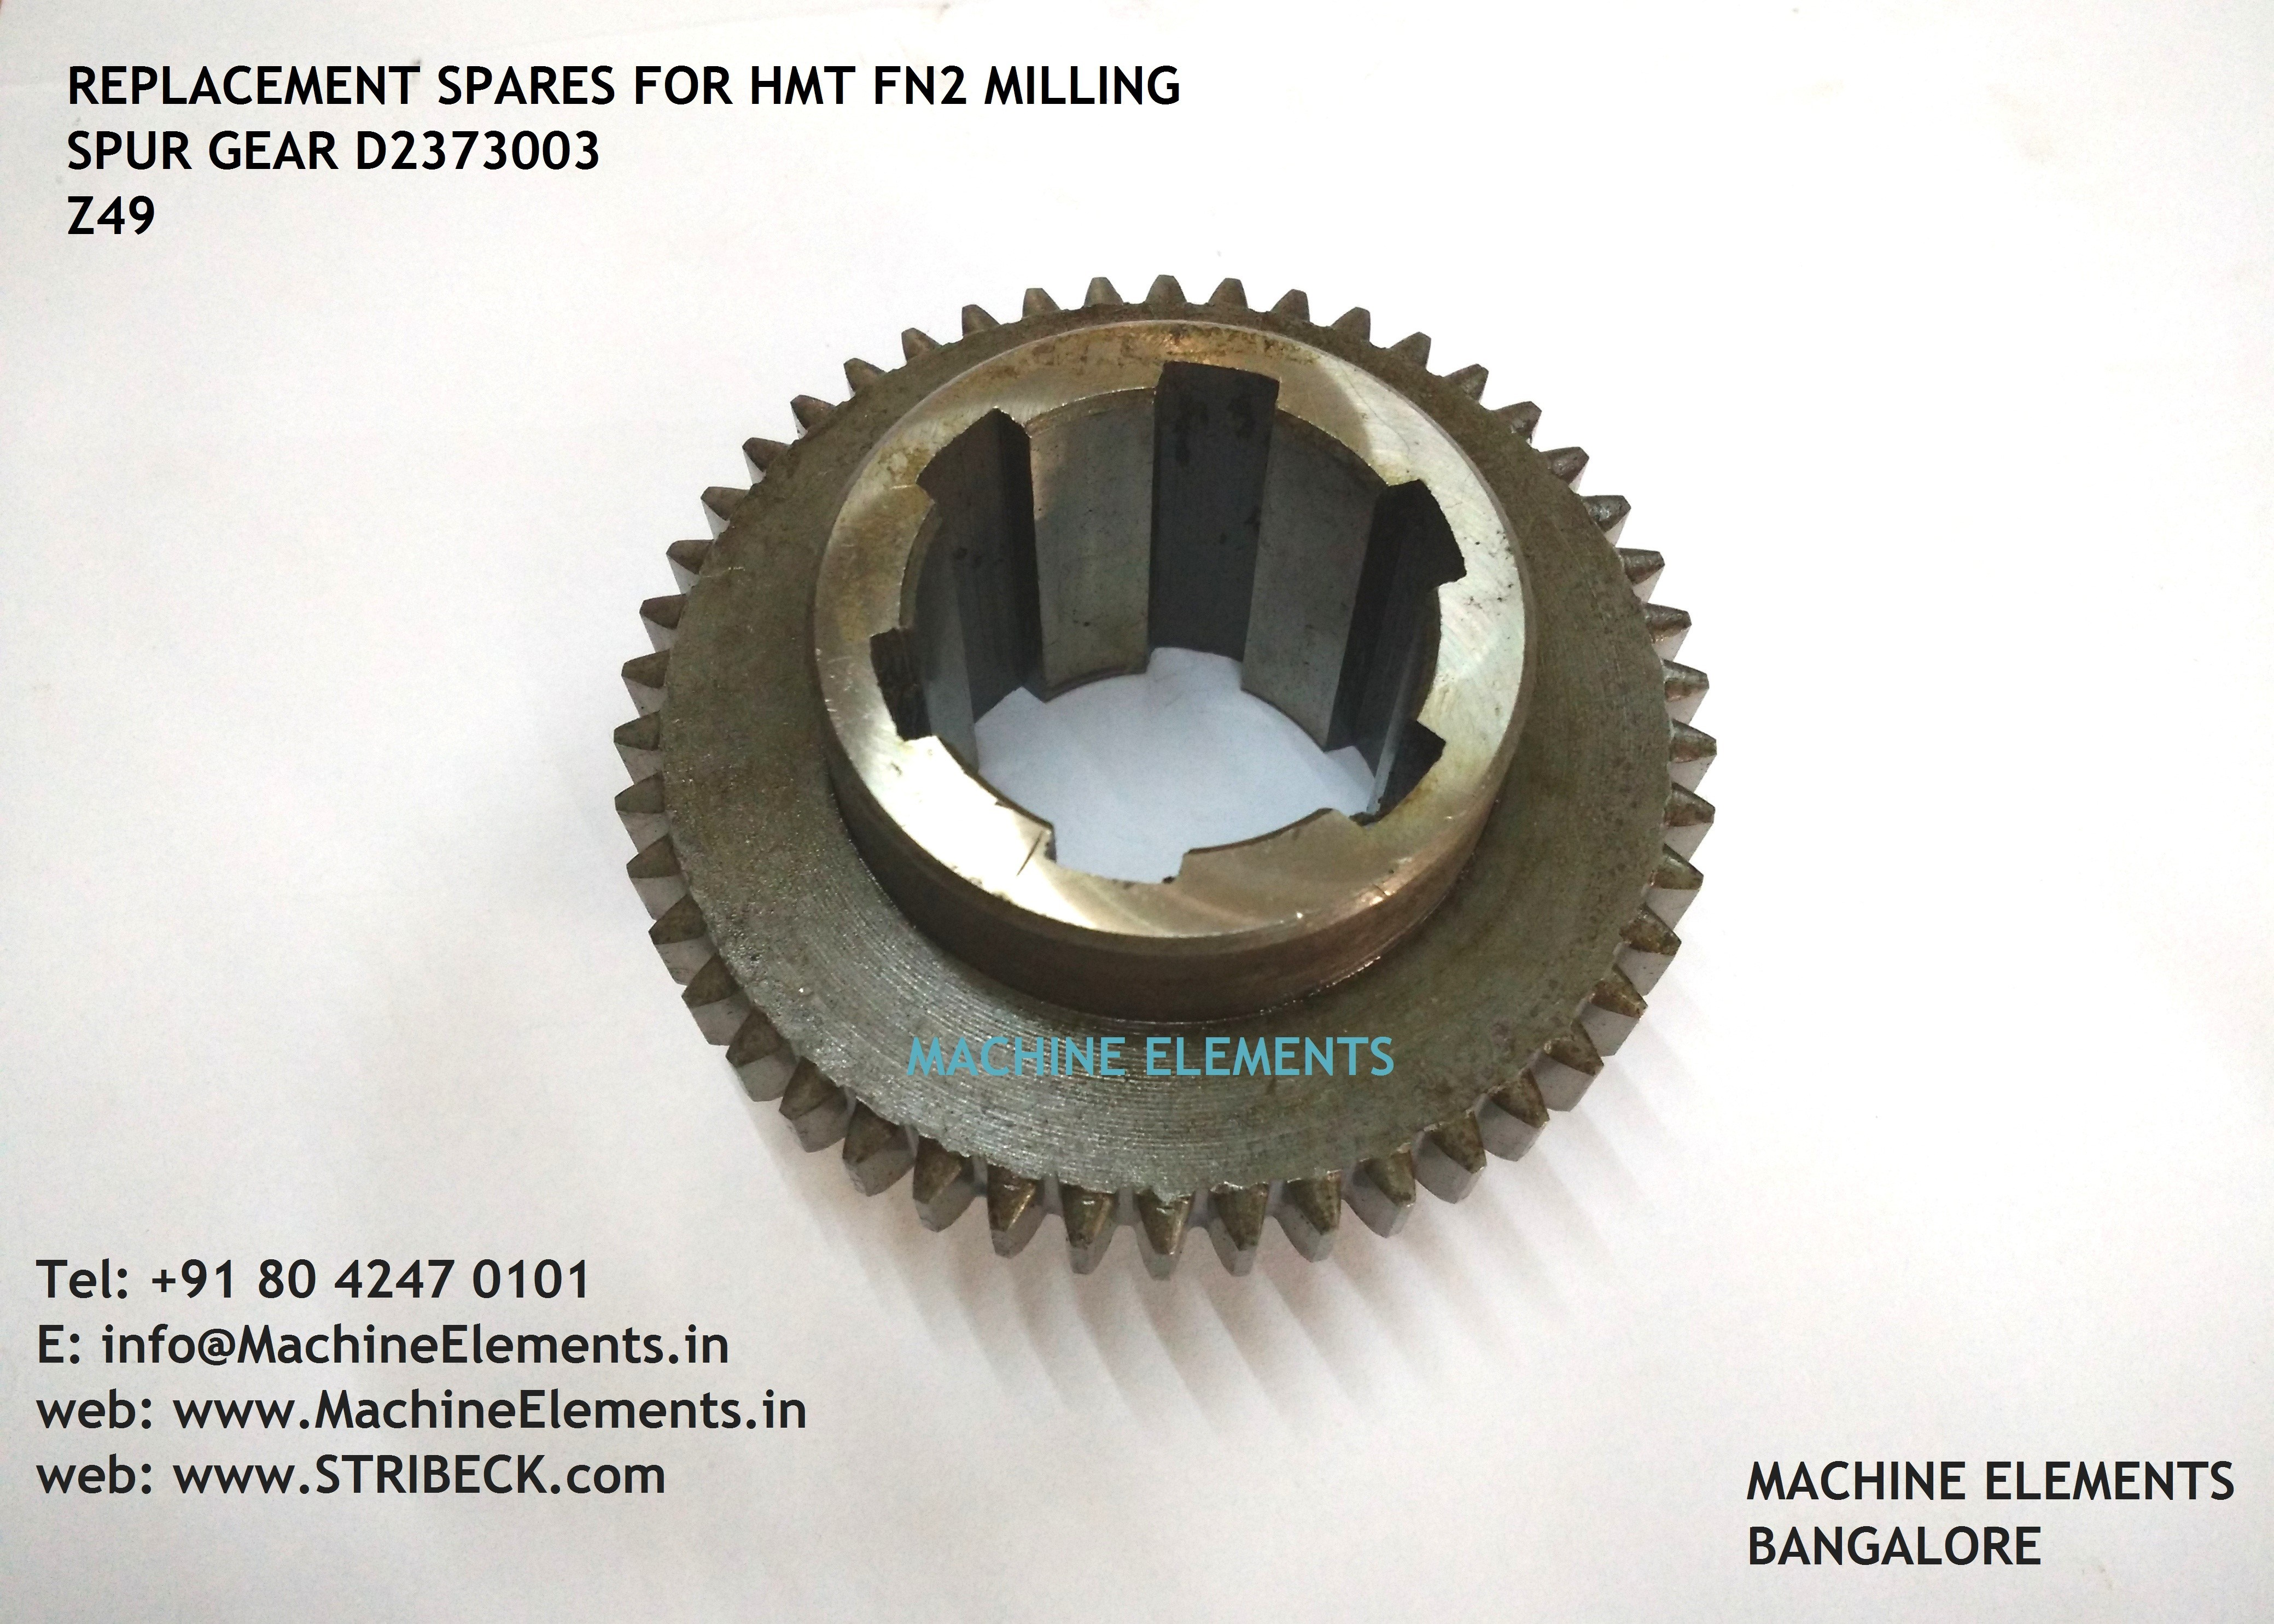 D2373003 -Z49 SPUR GEAR - 4 spline